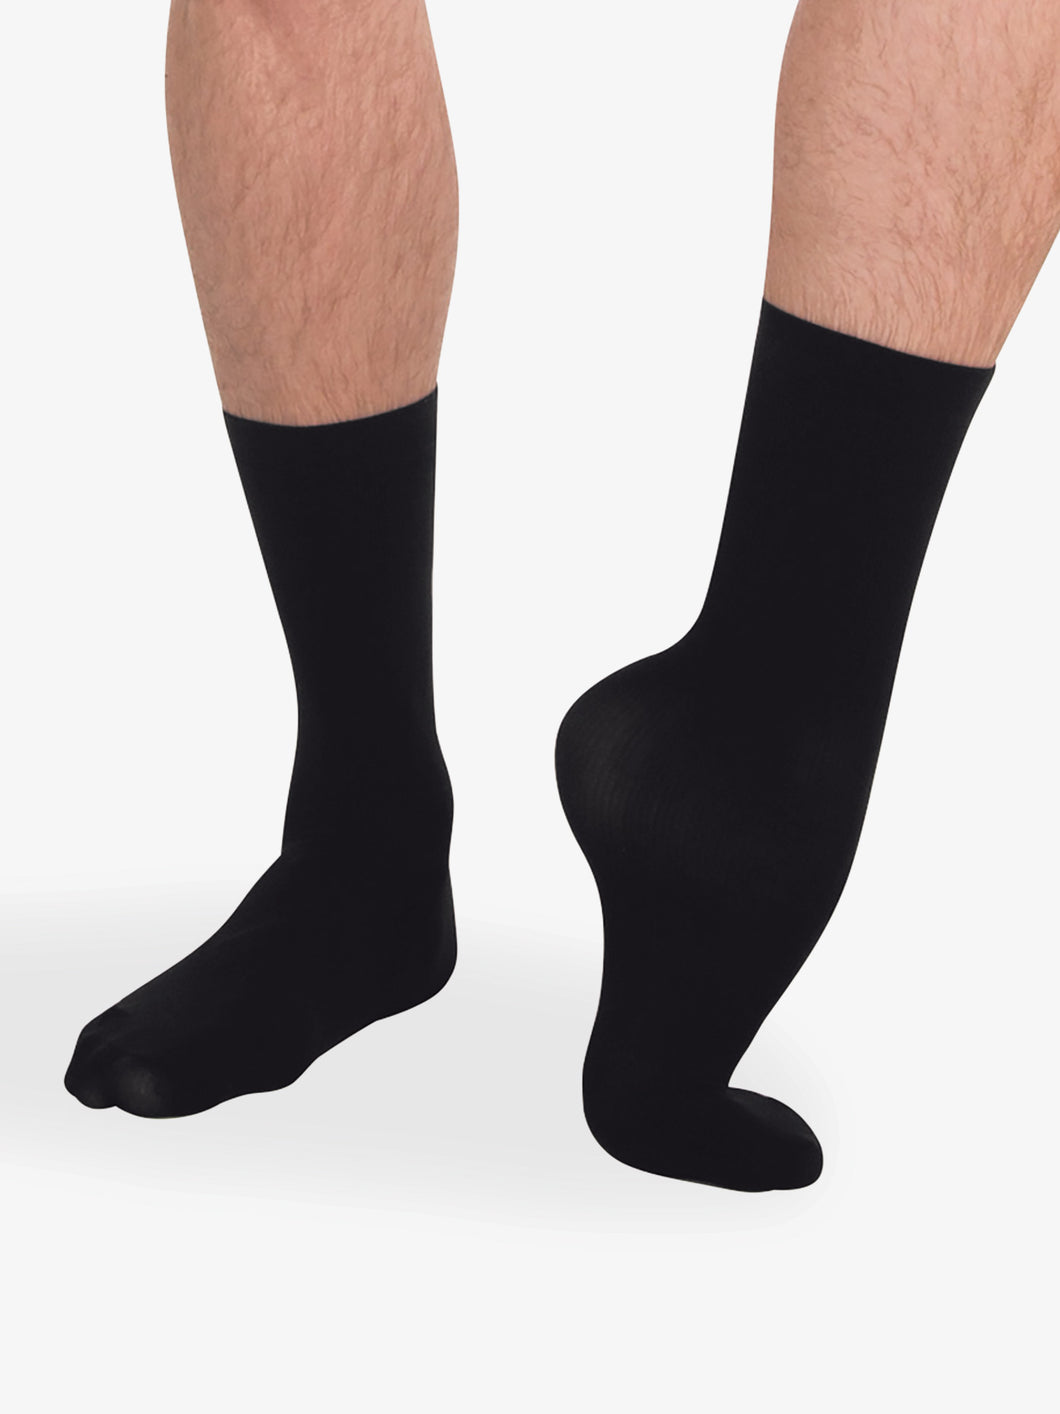 Body Wrappers (M71) Men's Dance Socks (2-Pack)